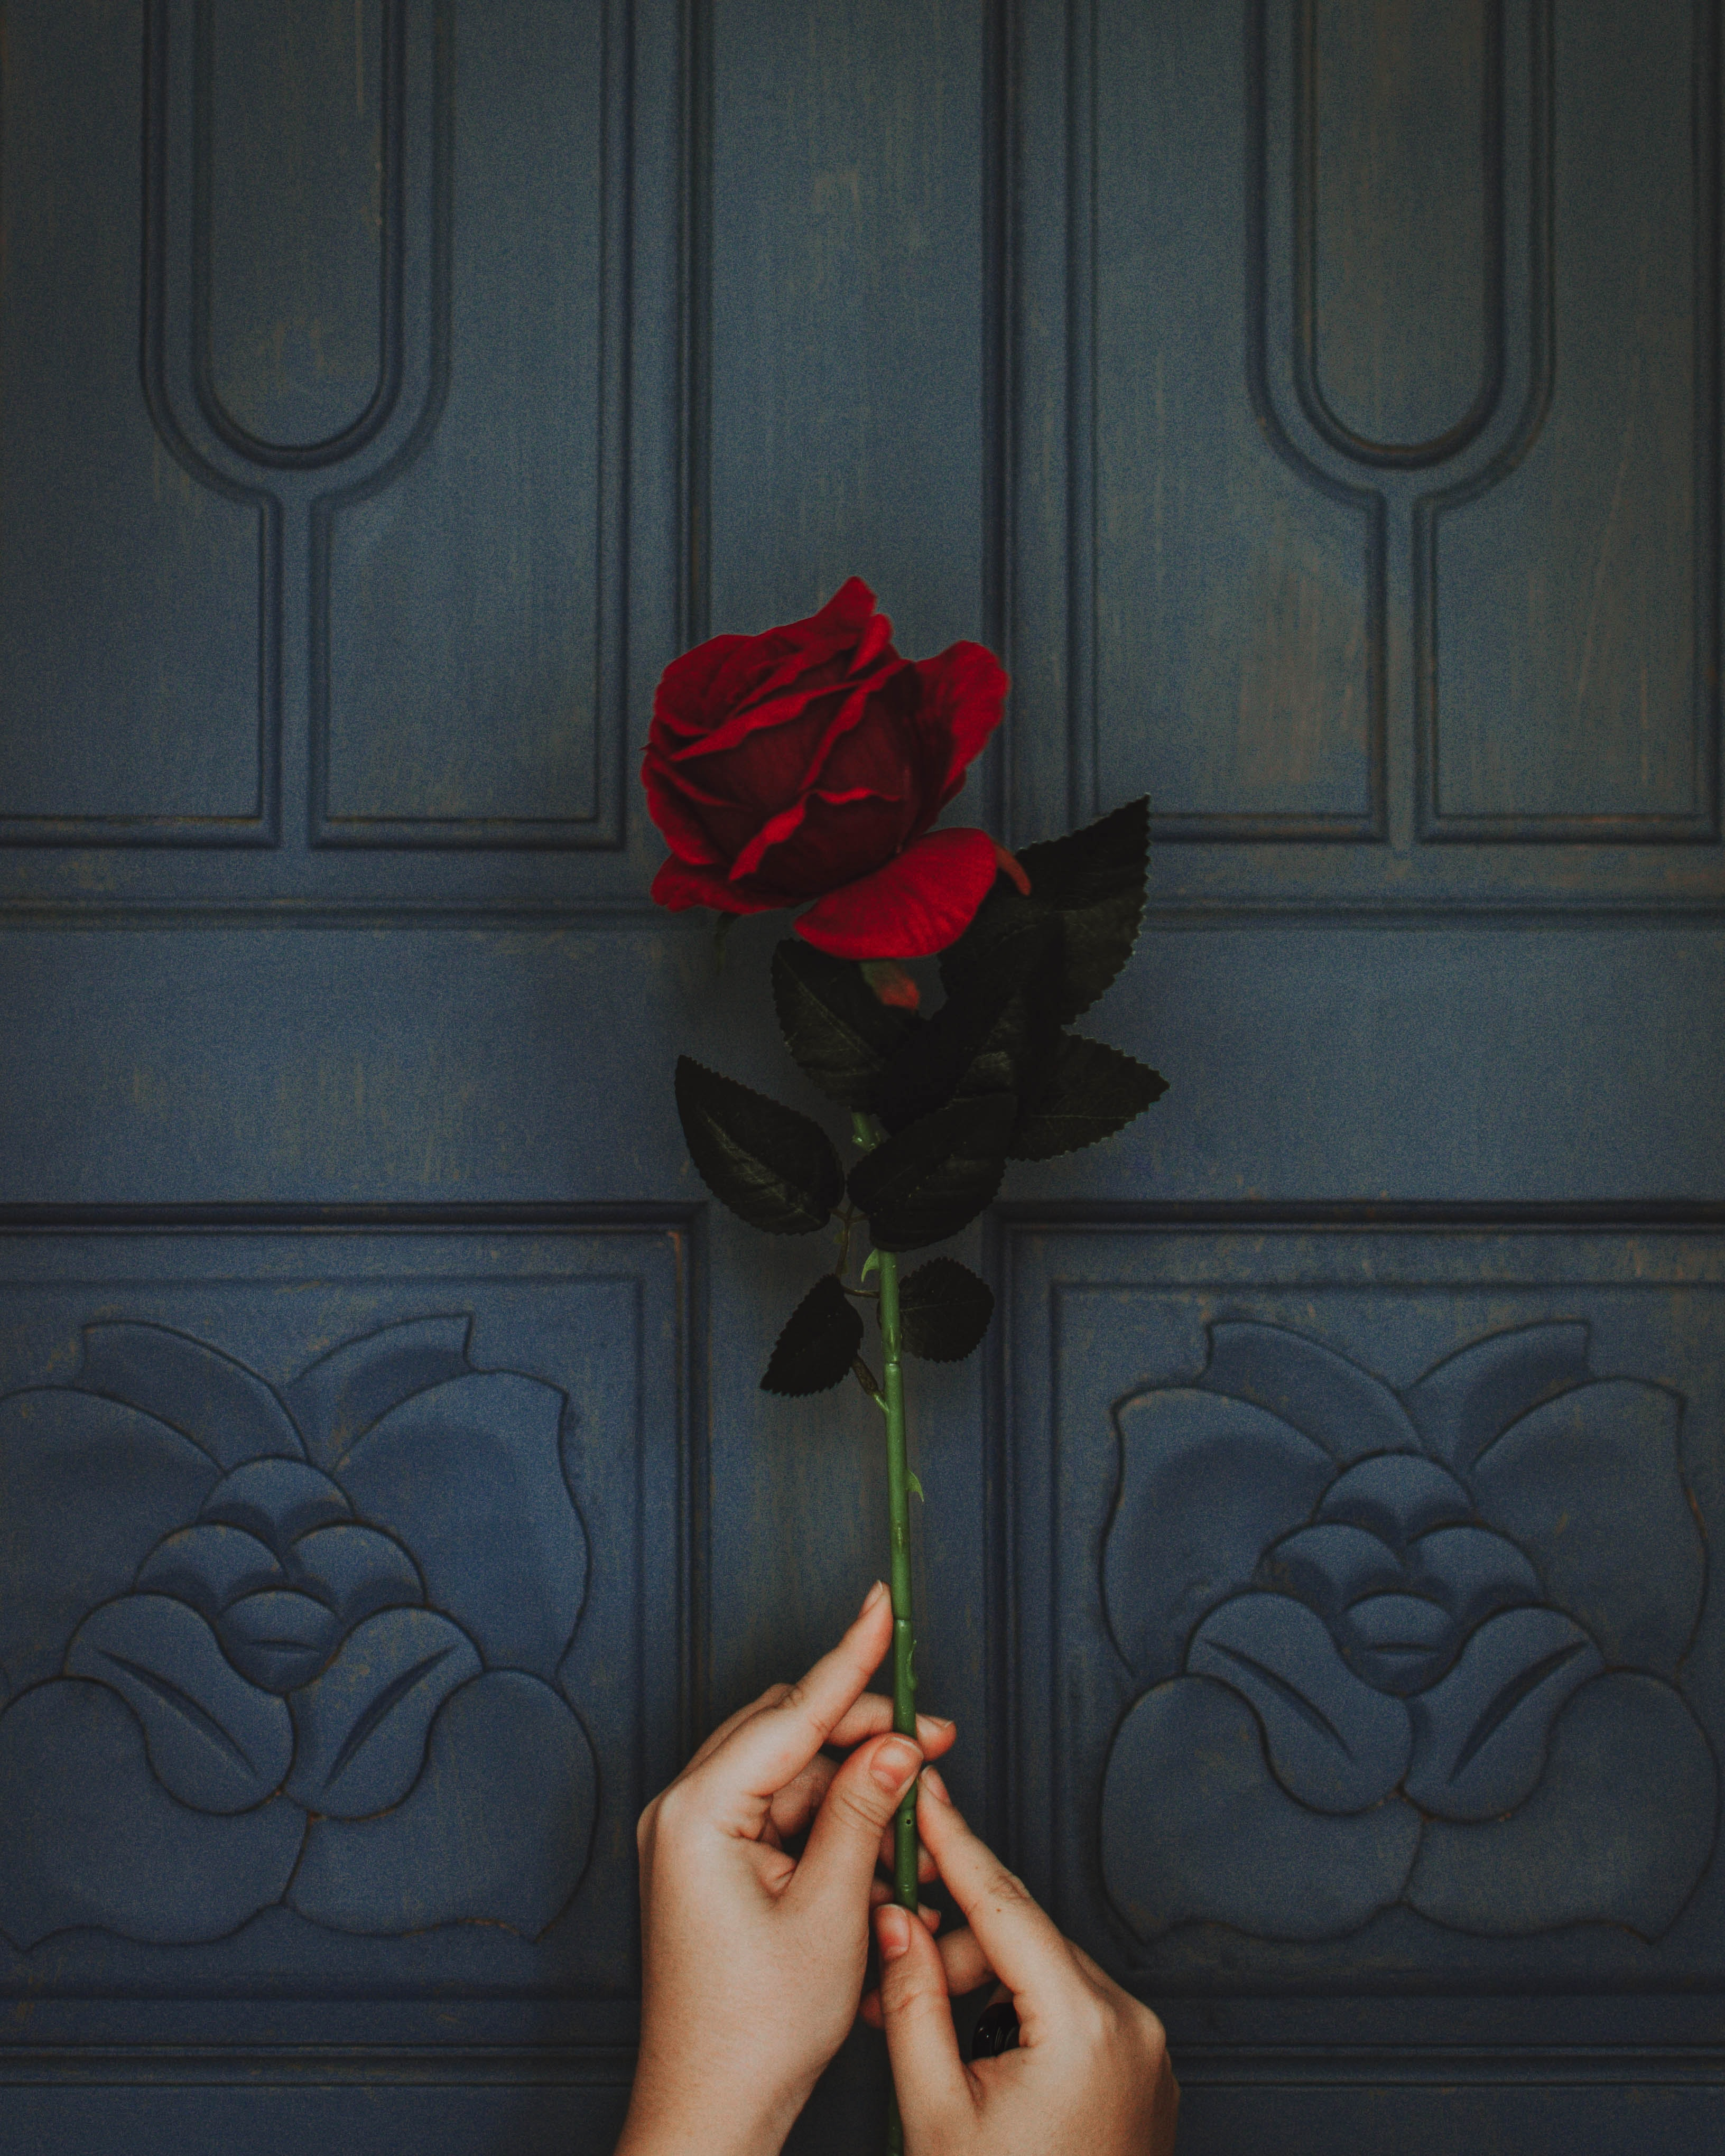 photo of person holding red rose flower